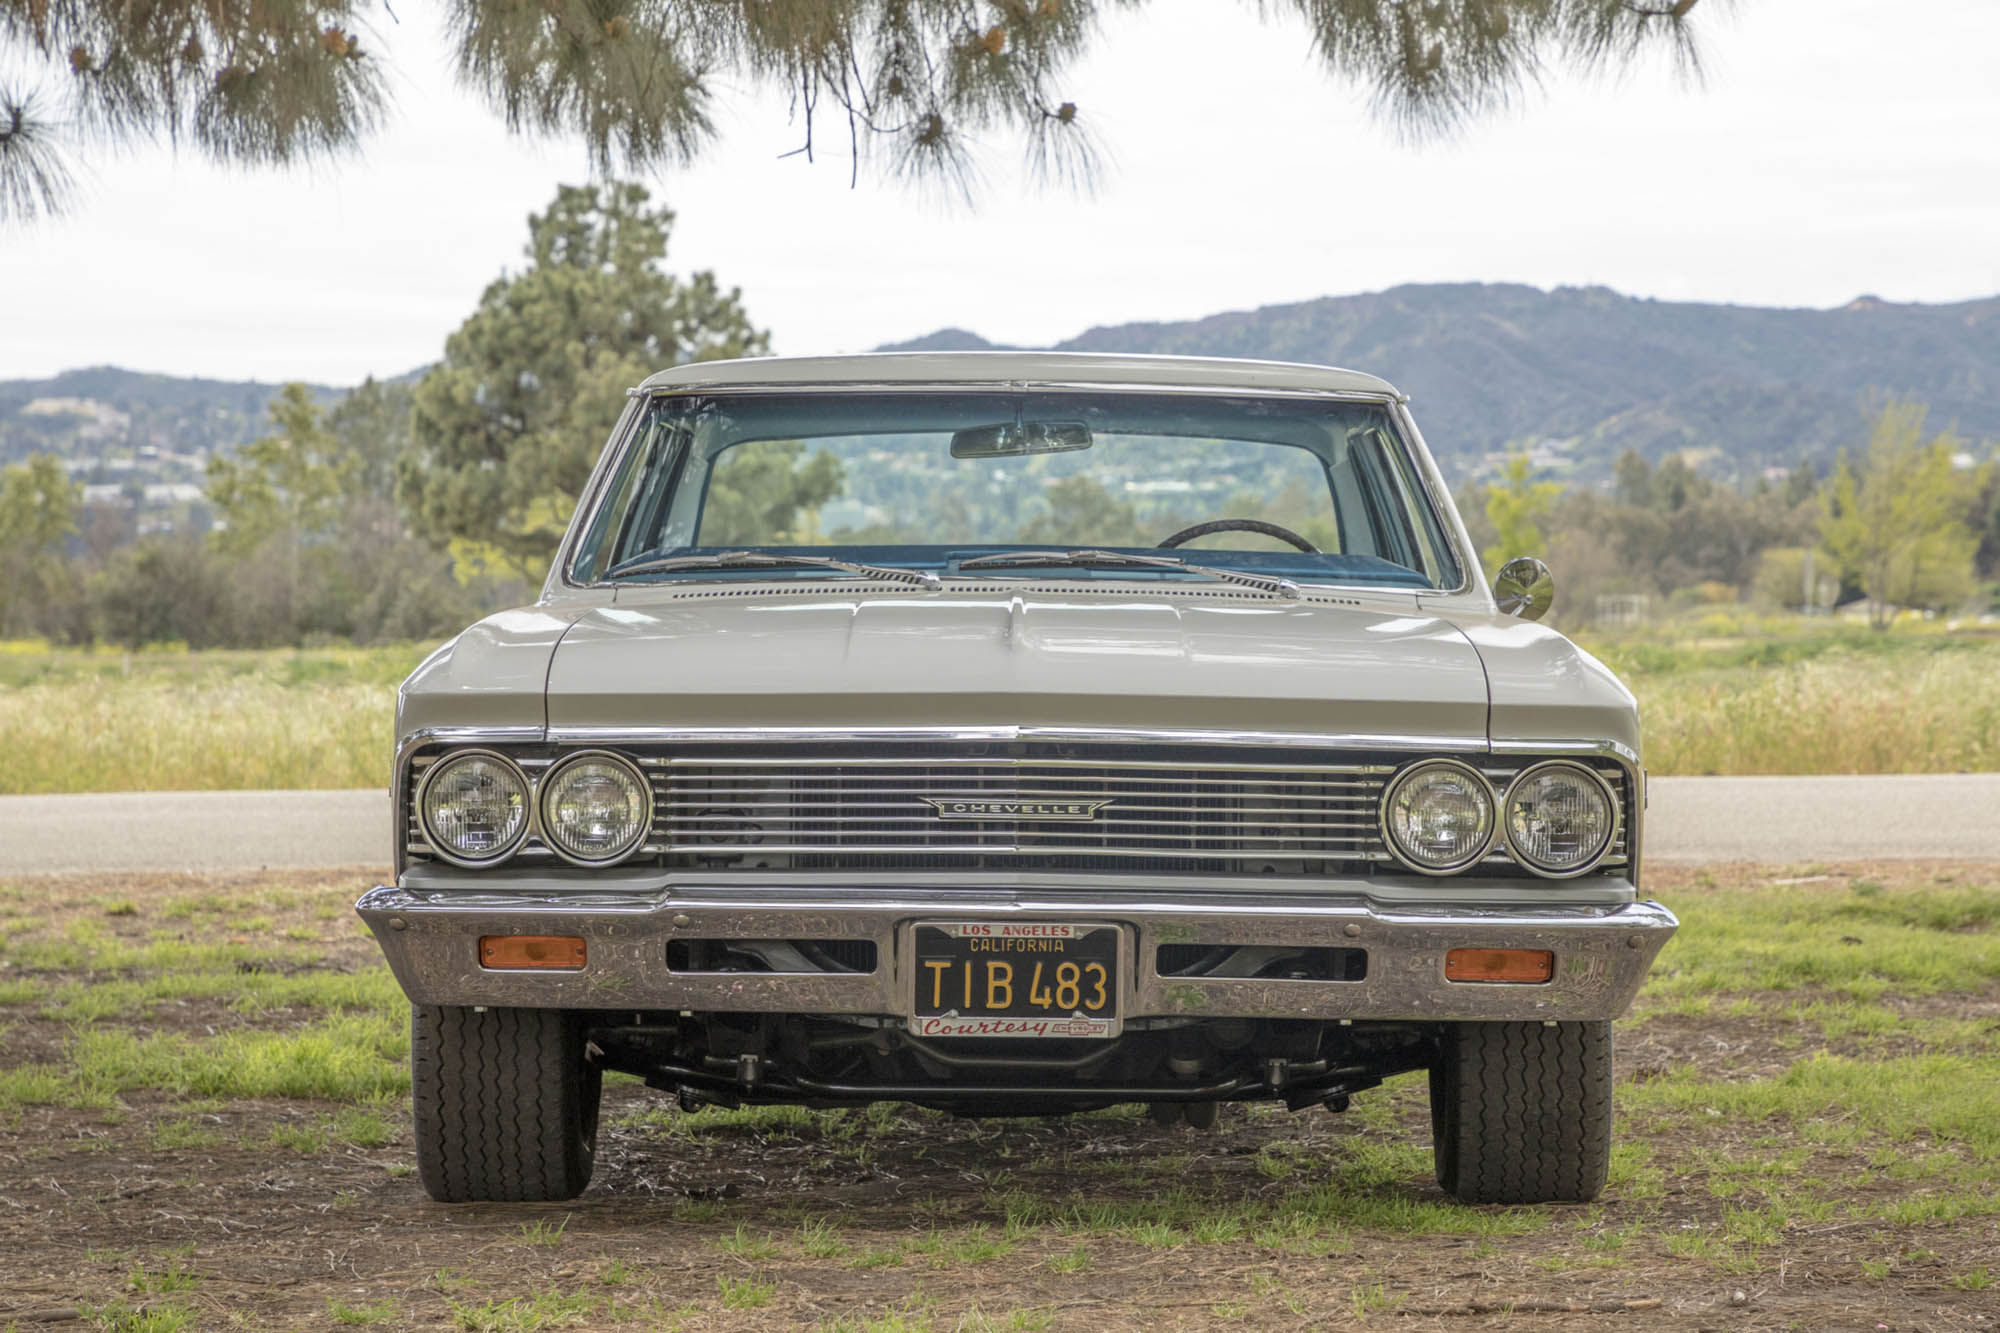 For Sale: 1966 Chevelle with a 489 ci Big-Block Chevy V8 – Engine